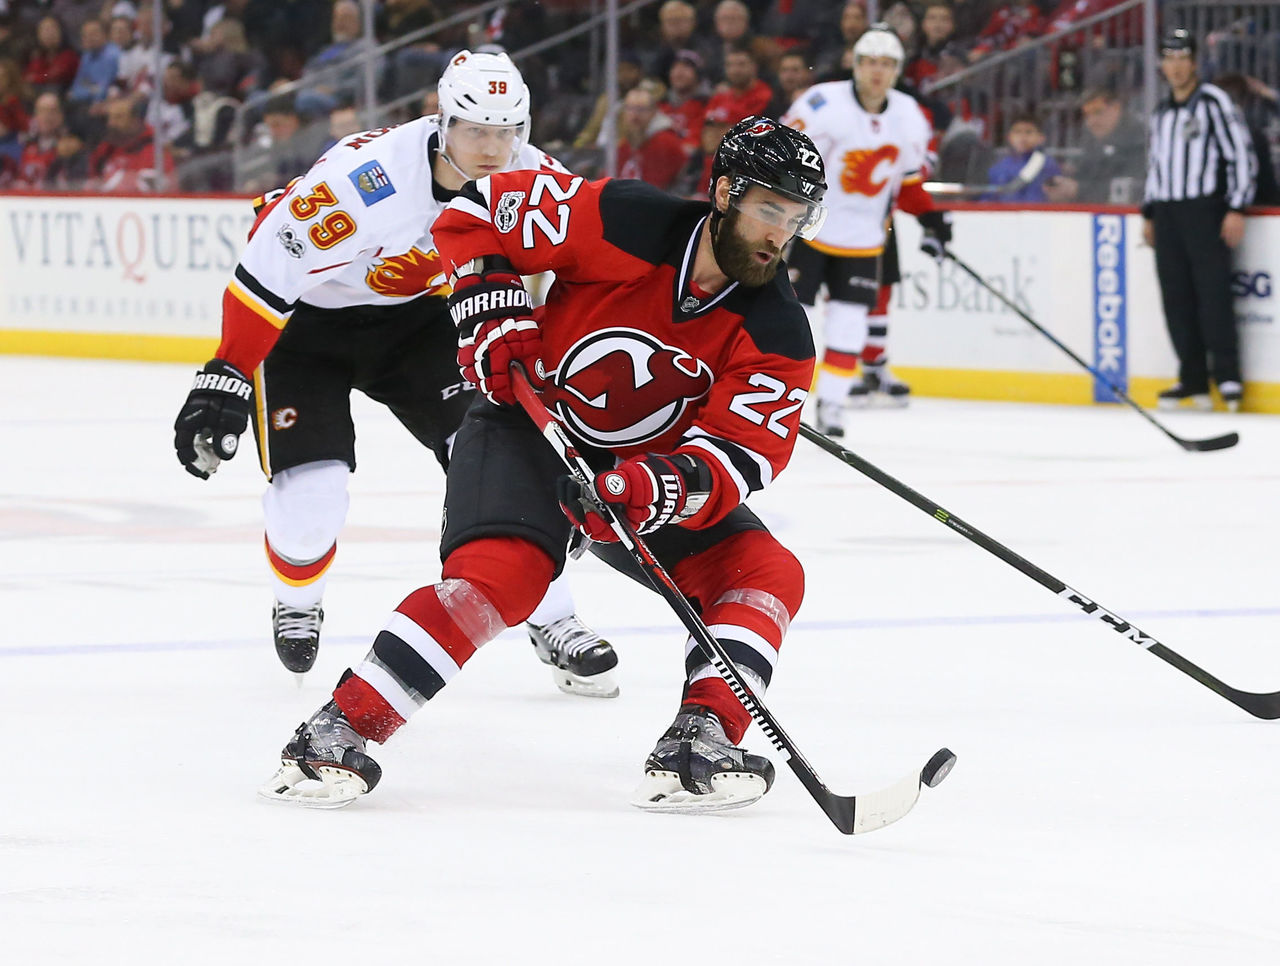 Cropped_2017-02-04t040829z_1334684585_nocid_rtrmadp_3_nhl-calgary-flames-at-new-jersey-devils